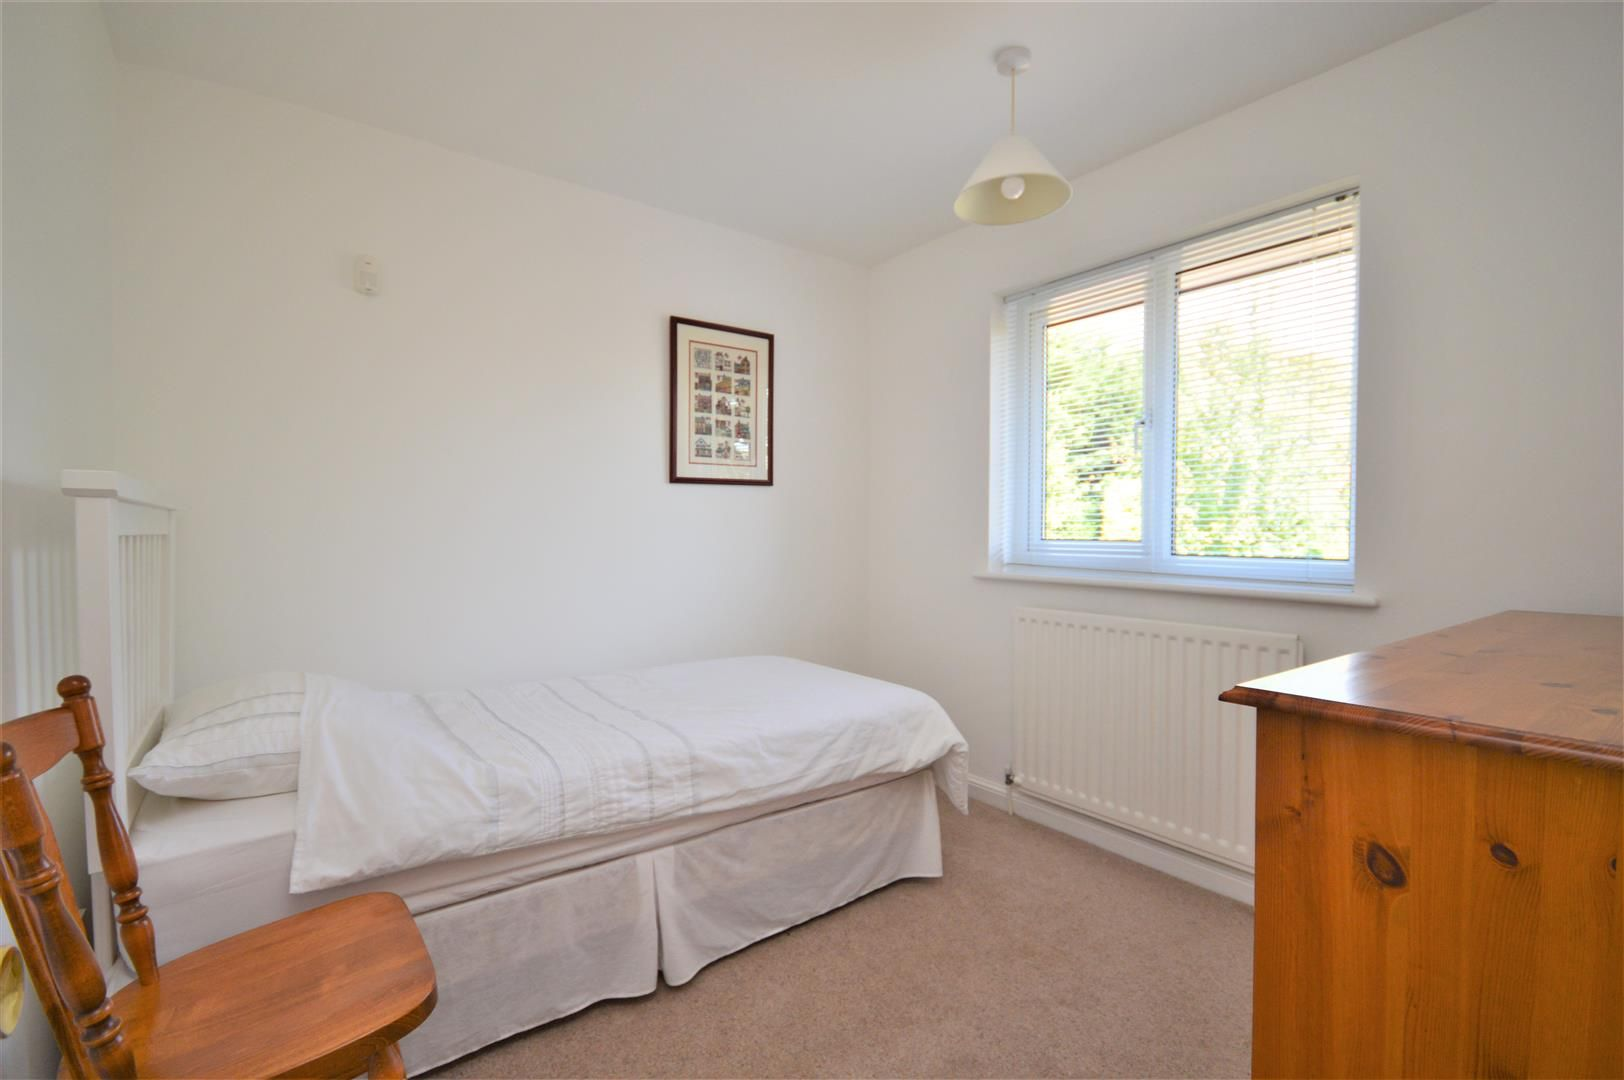 4 bed detached for sale in Hereford 15